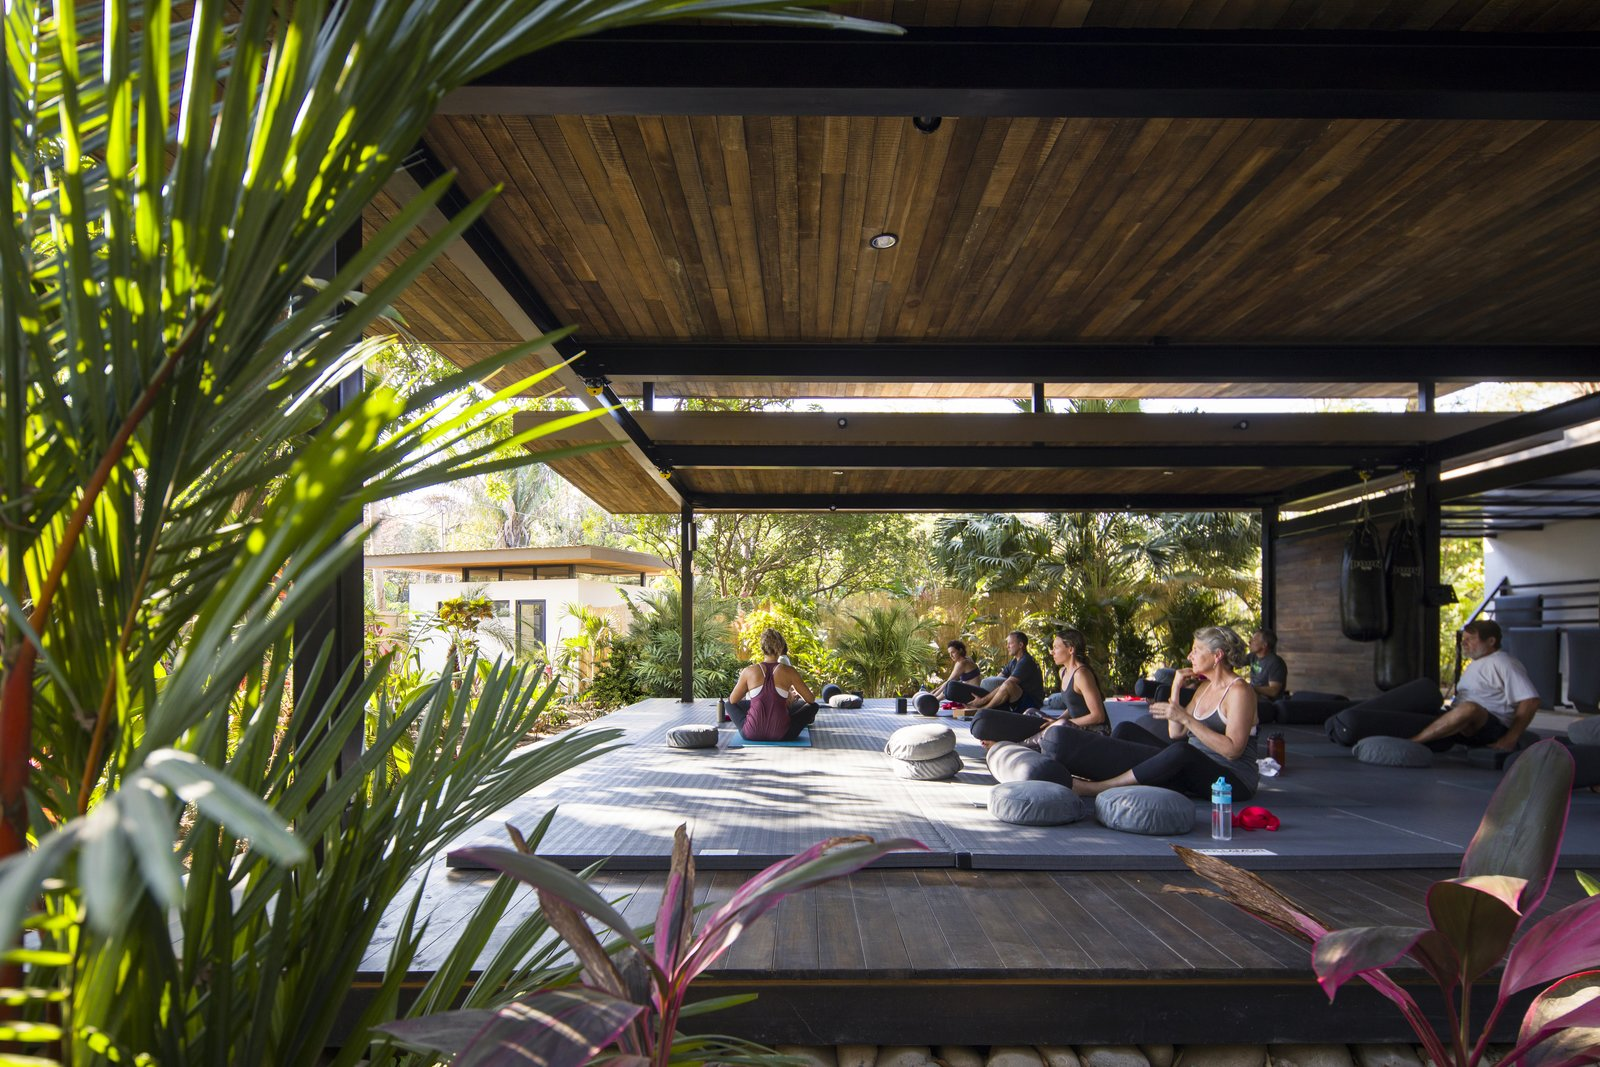 Photo 11 of 11 in Decompress at This Boutique Hotel and Yoga Retreat in the Costa Rican Jungle